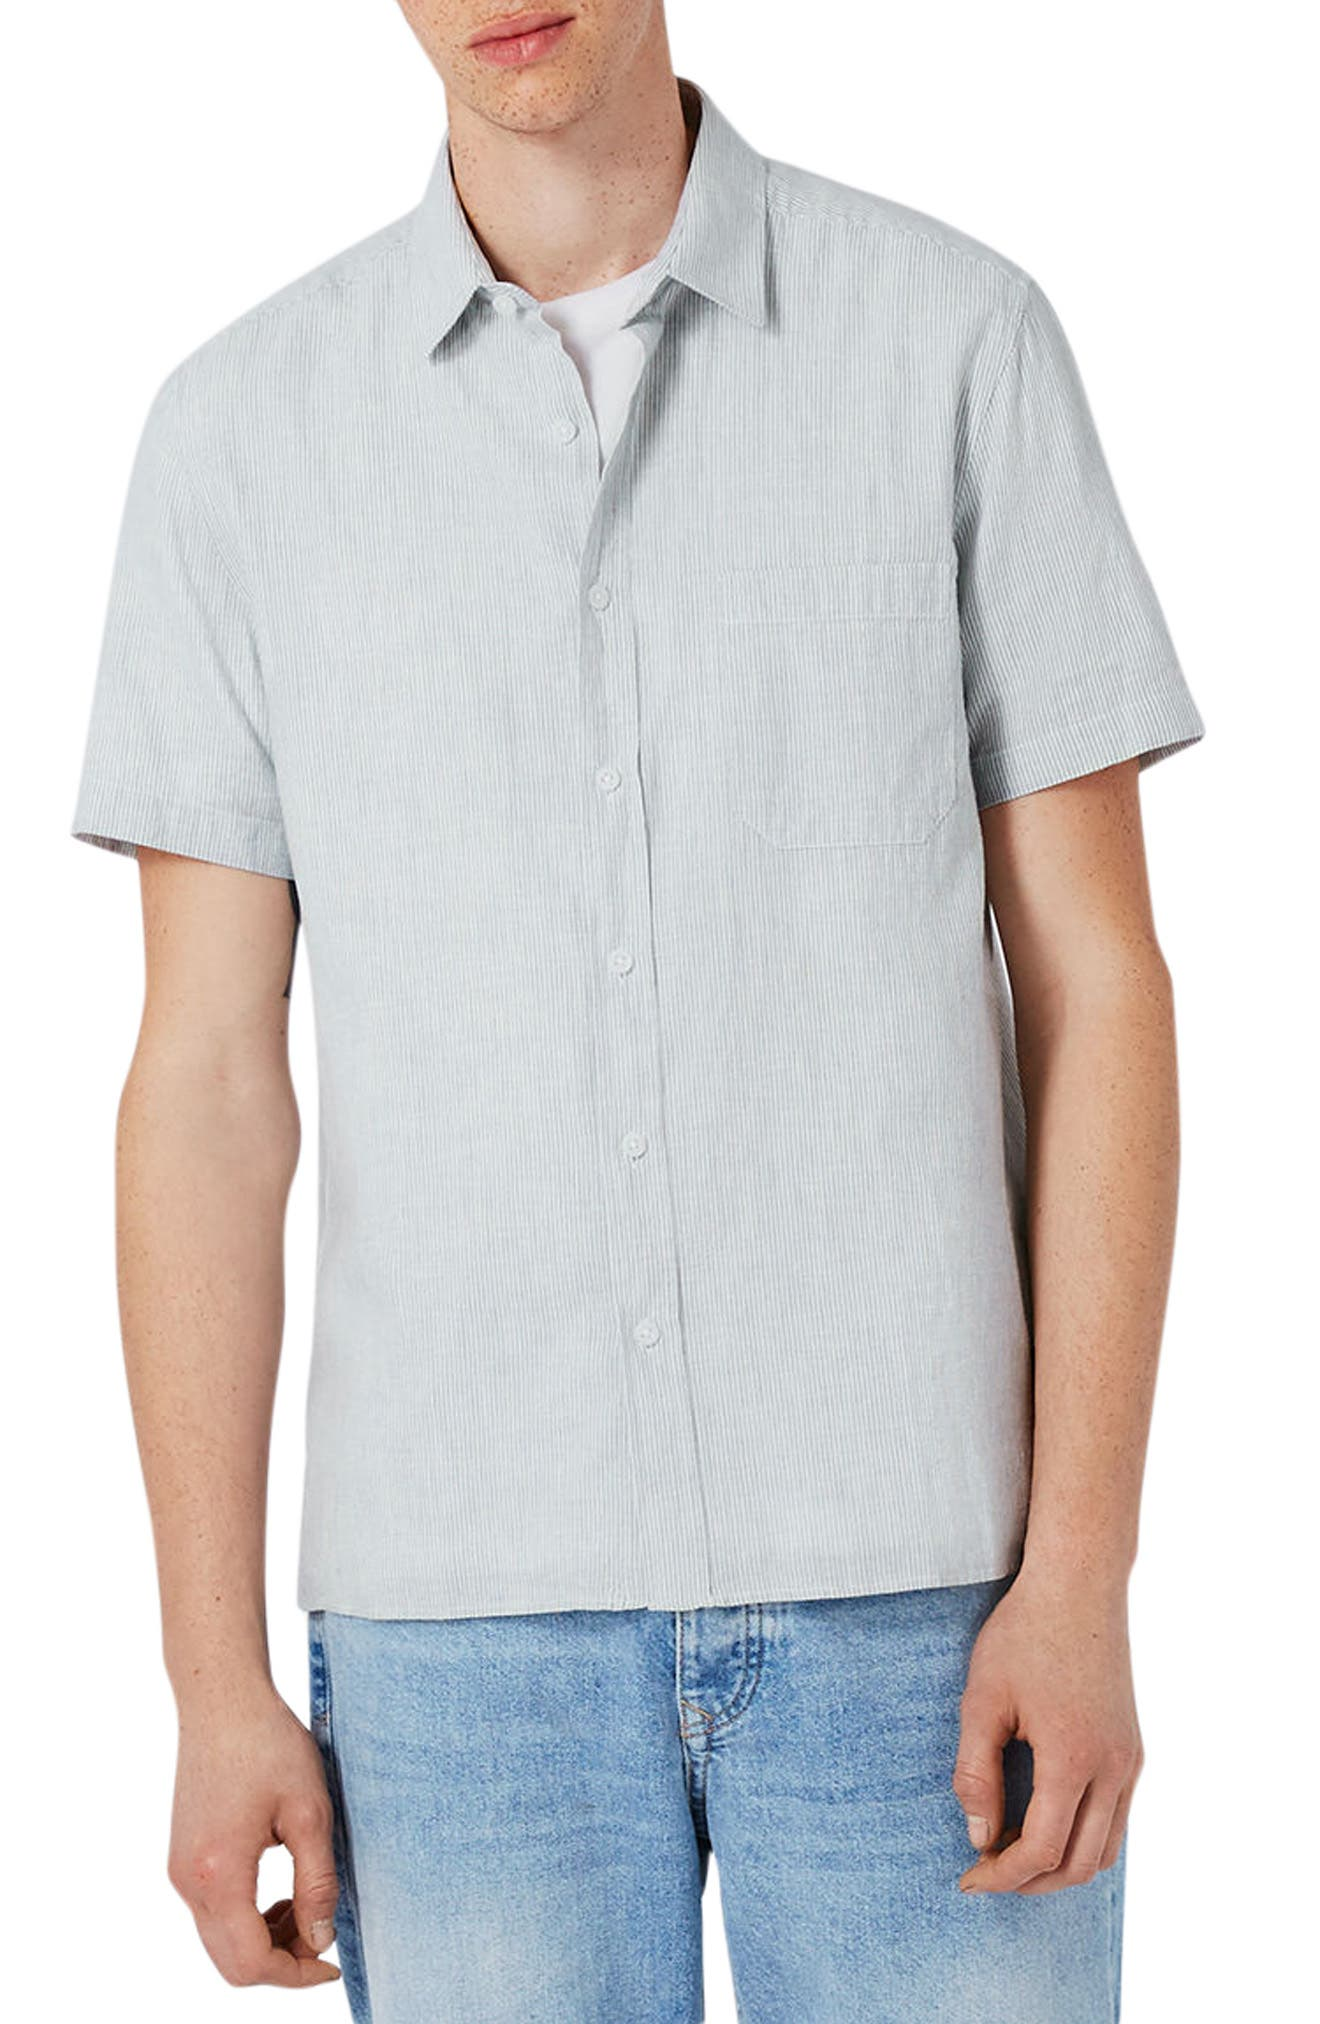 Topman Classic Fit Stripe Cotton & Linen Shirt